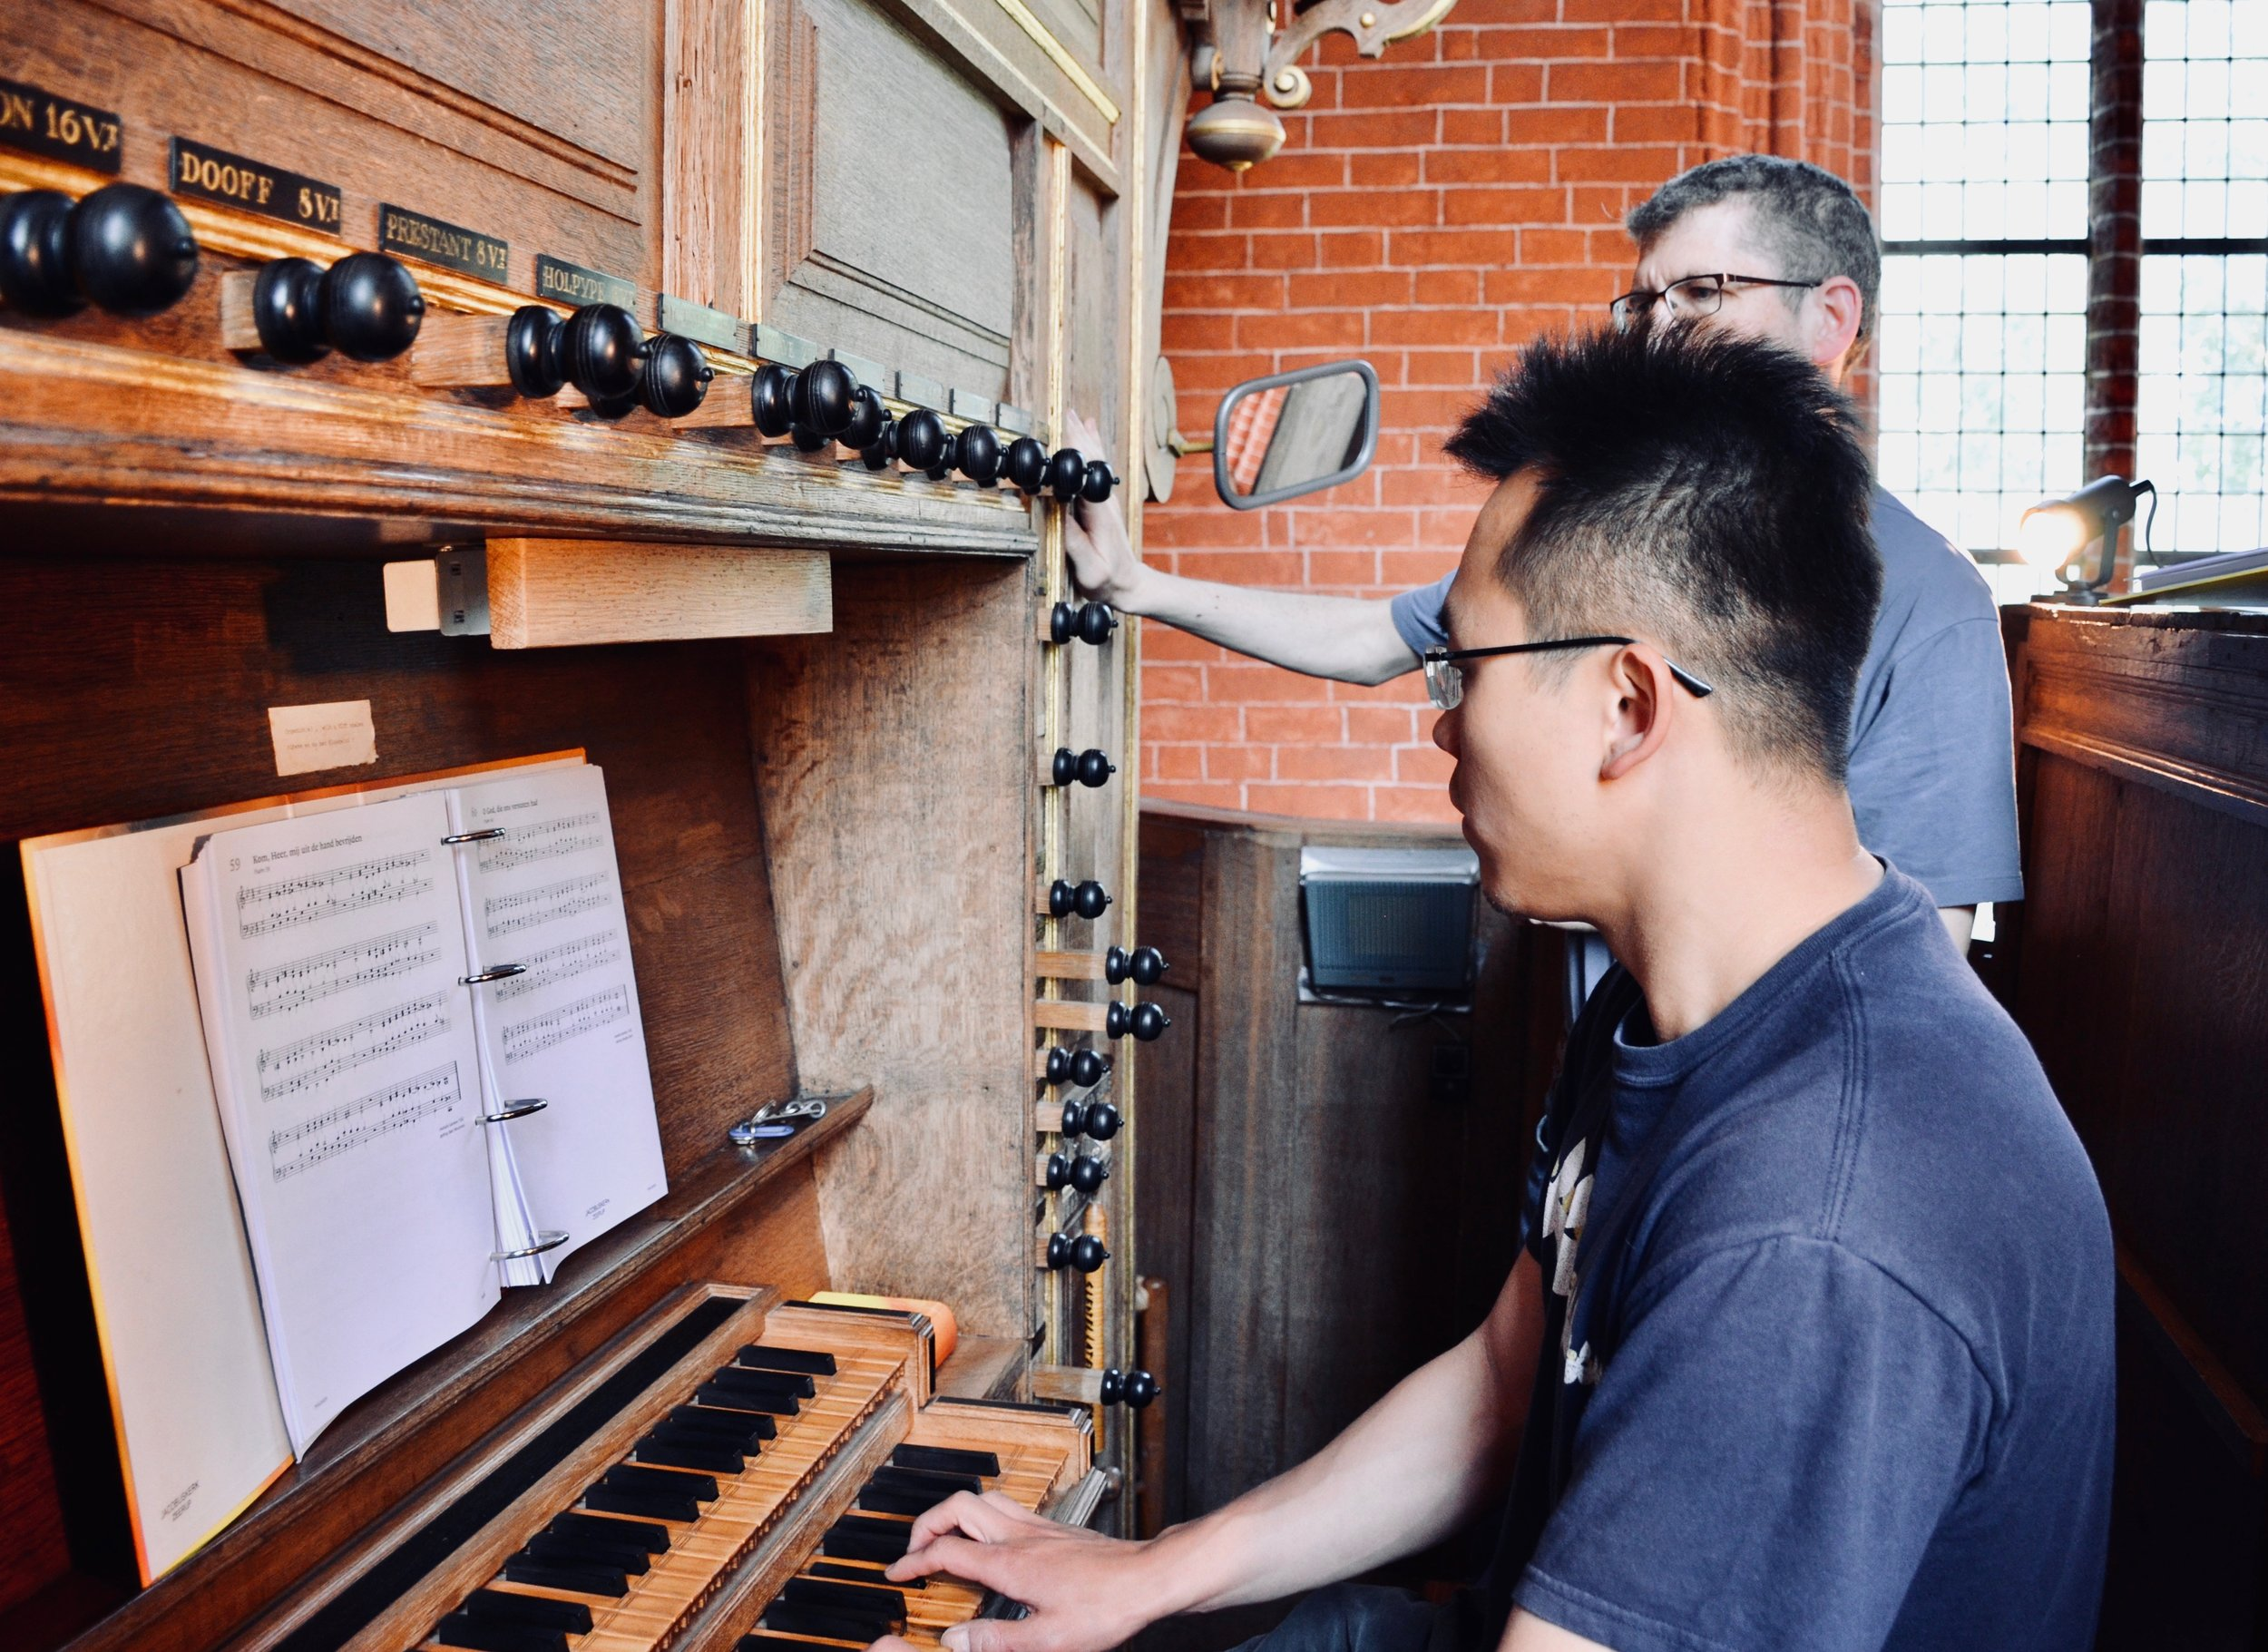 Adrian Cho at the 1651 Faber organ, Zeerijp, Netherlands.